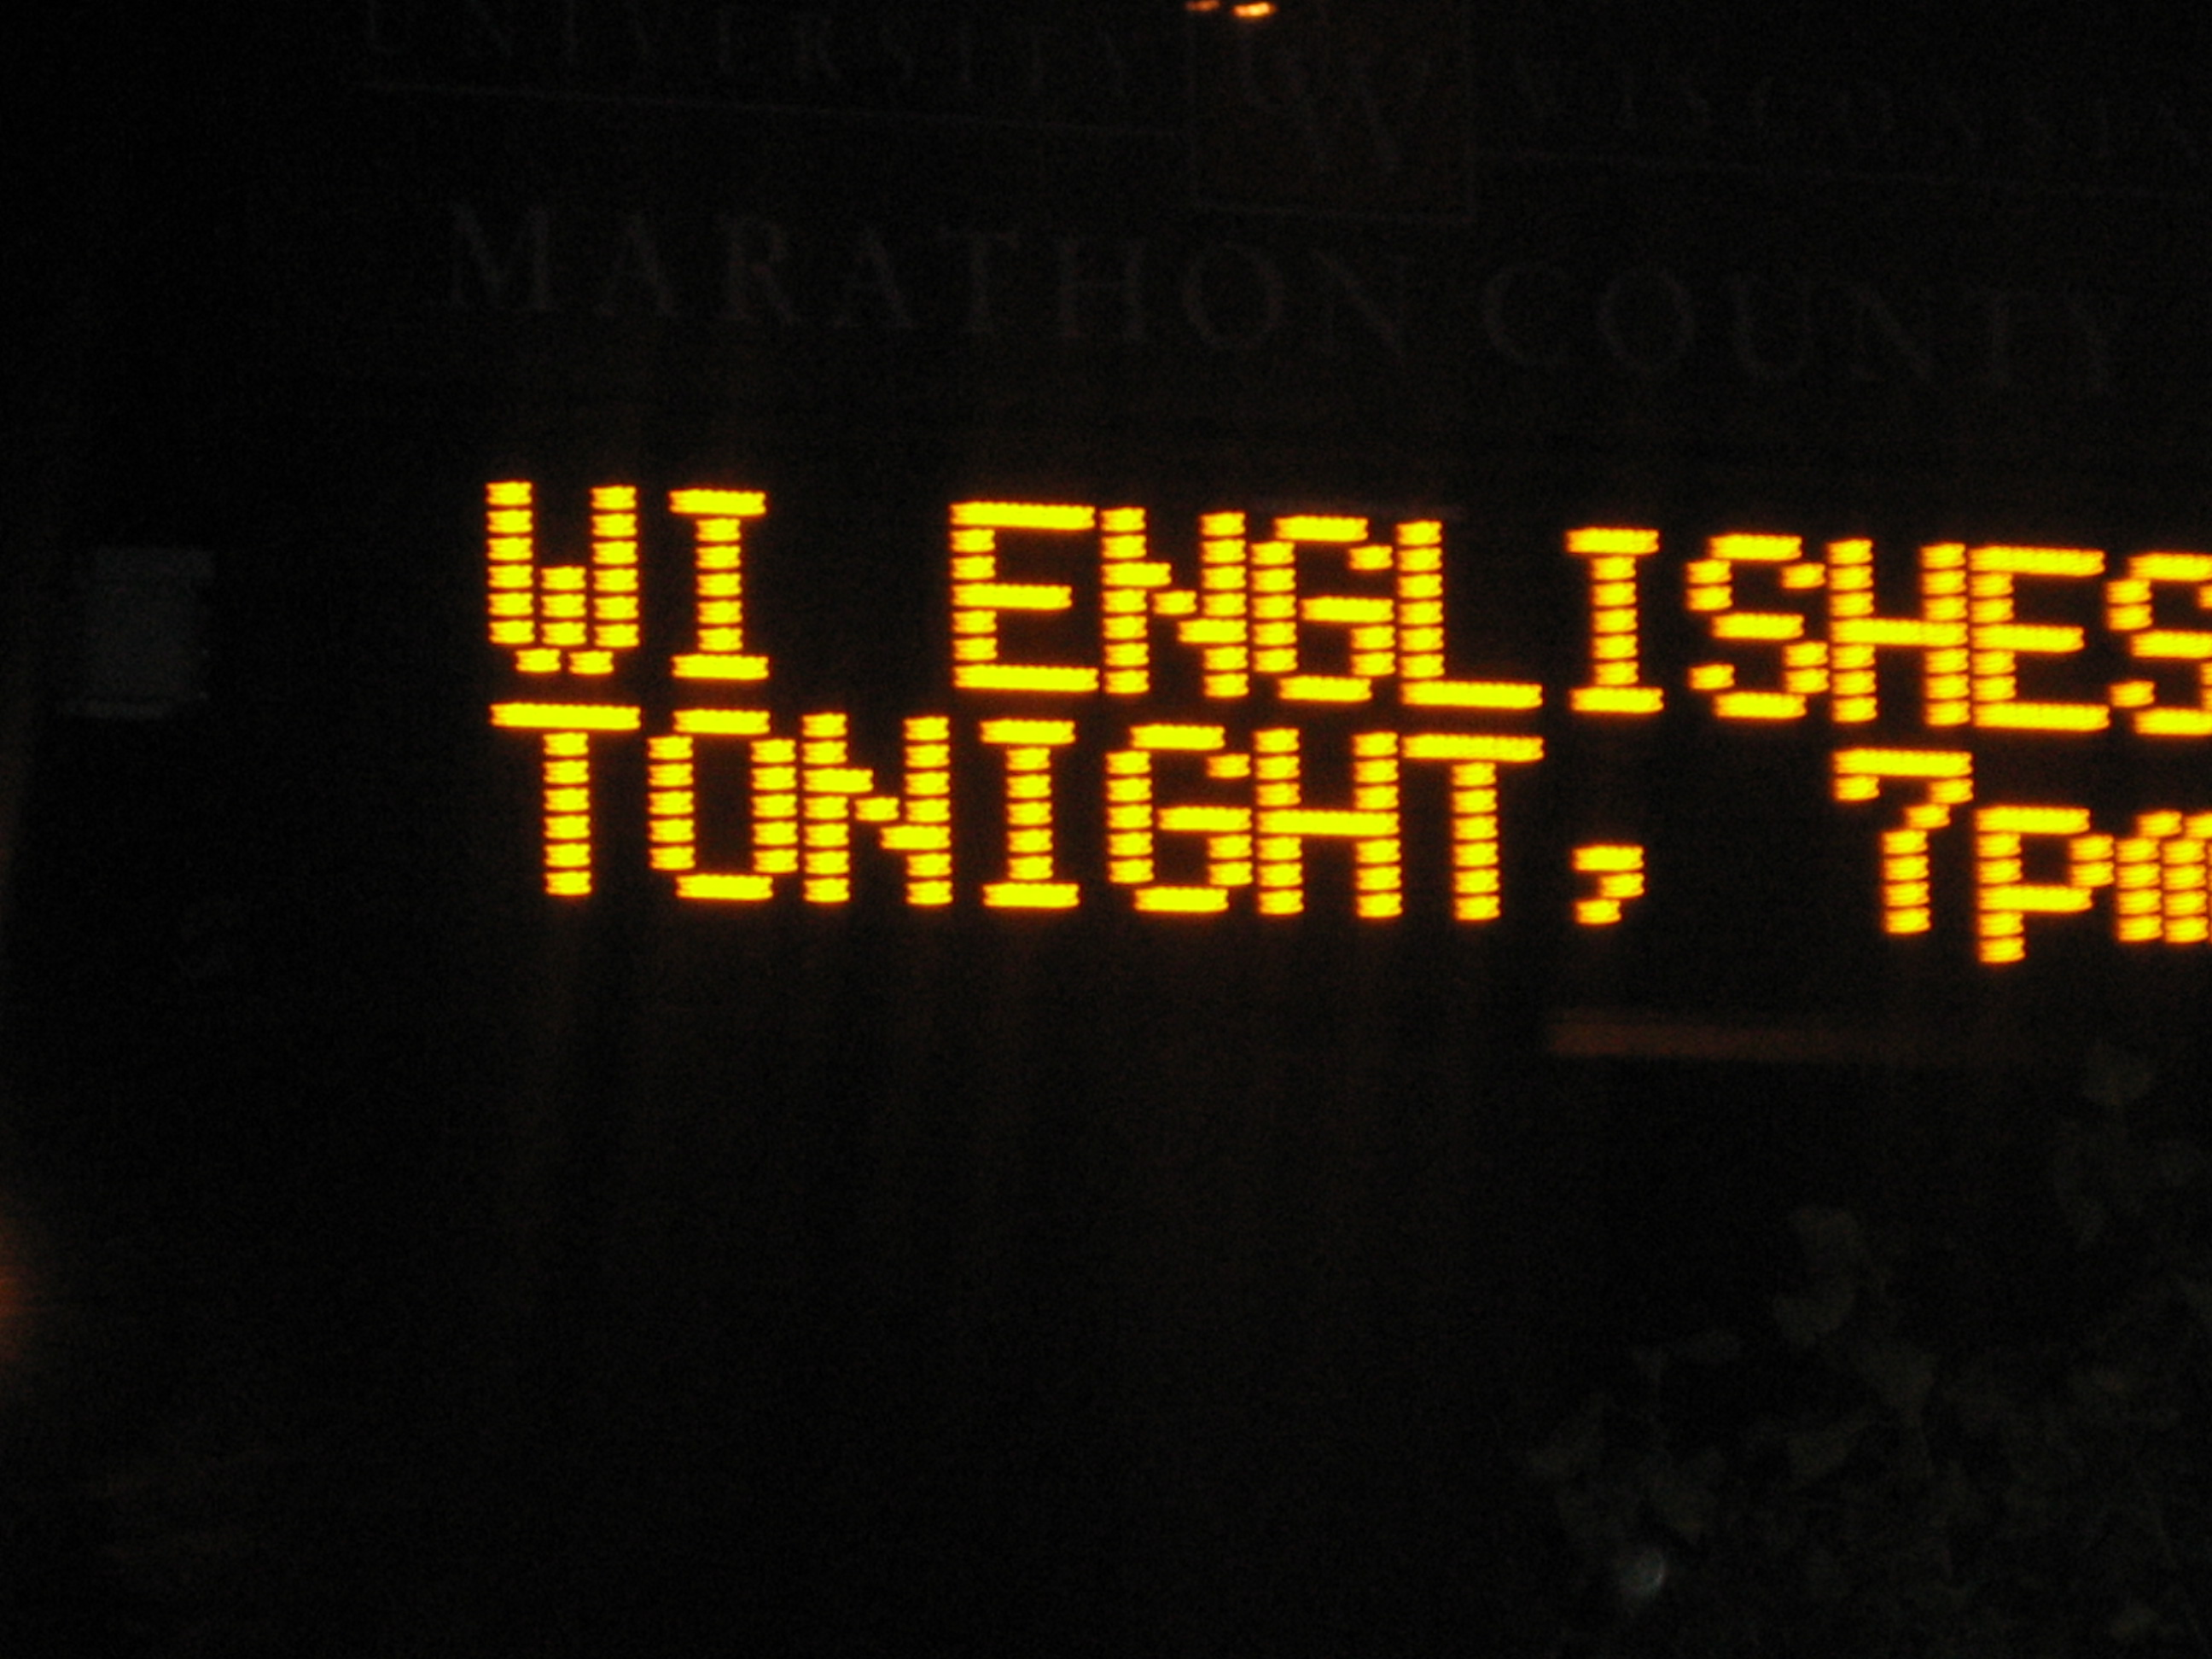 Wi Eng sign 10 07 0